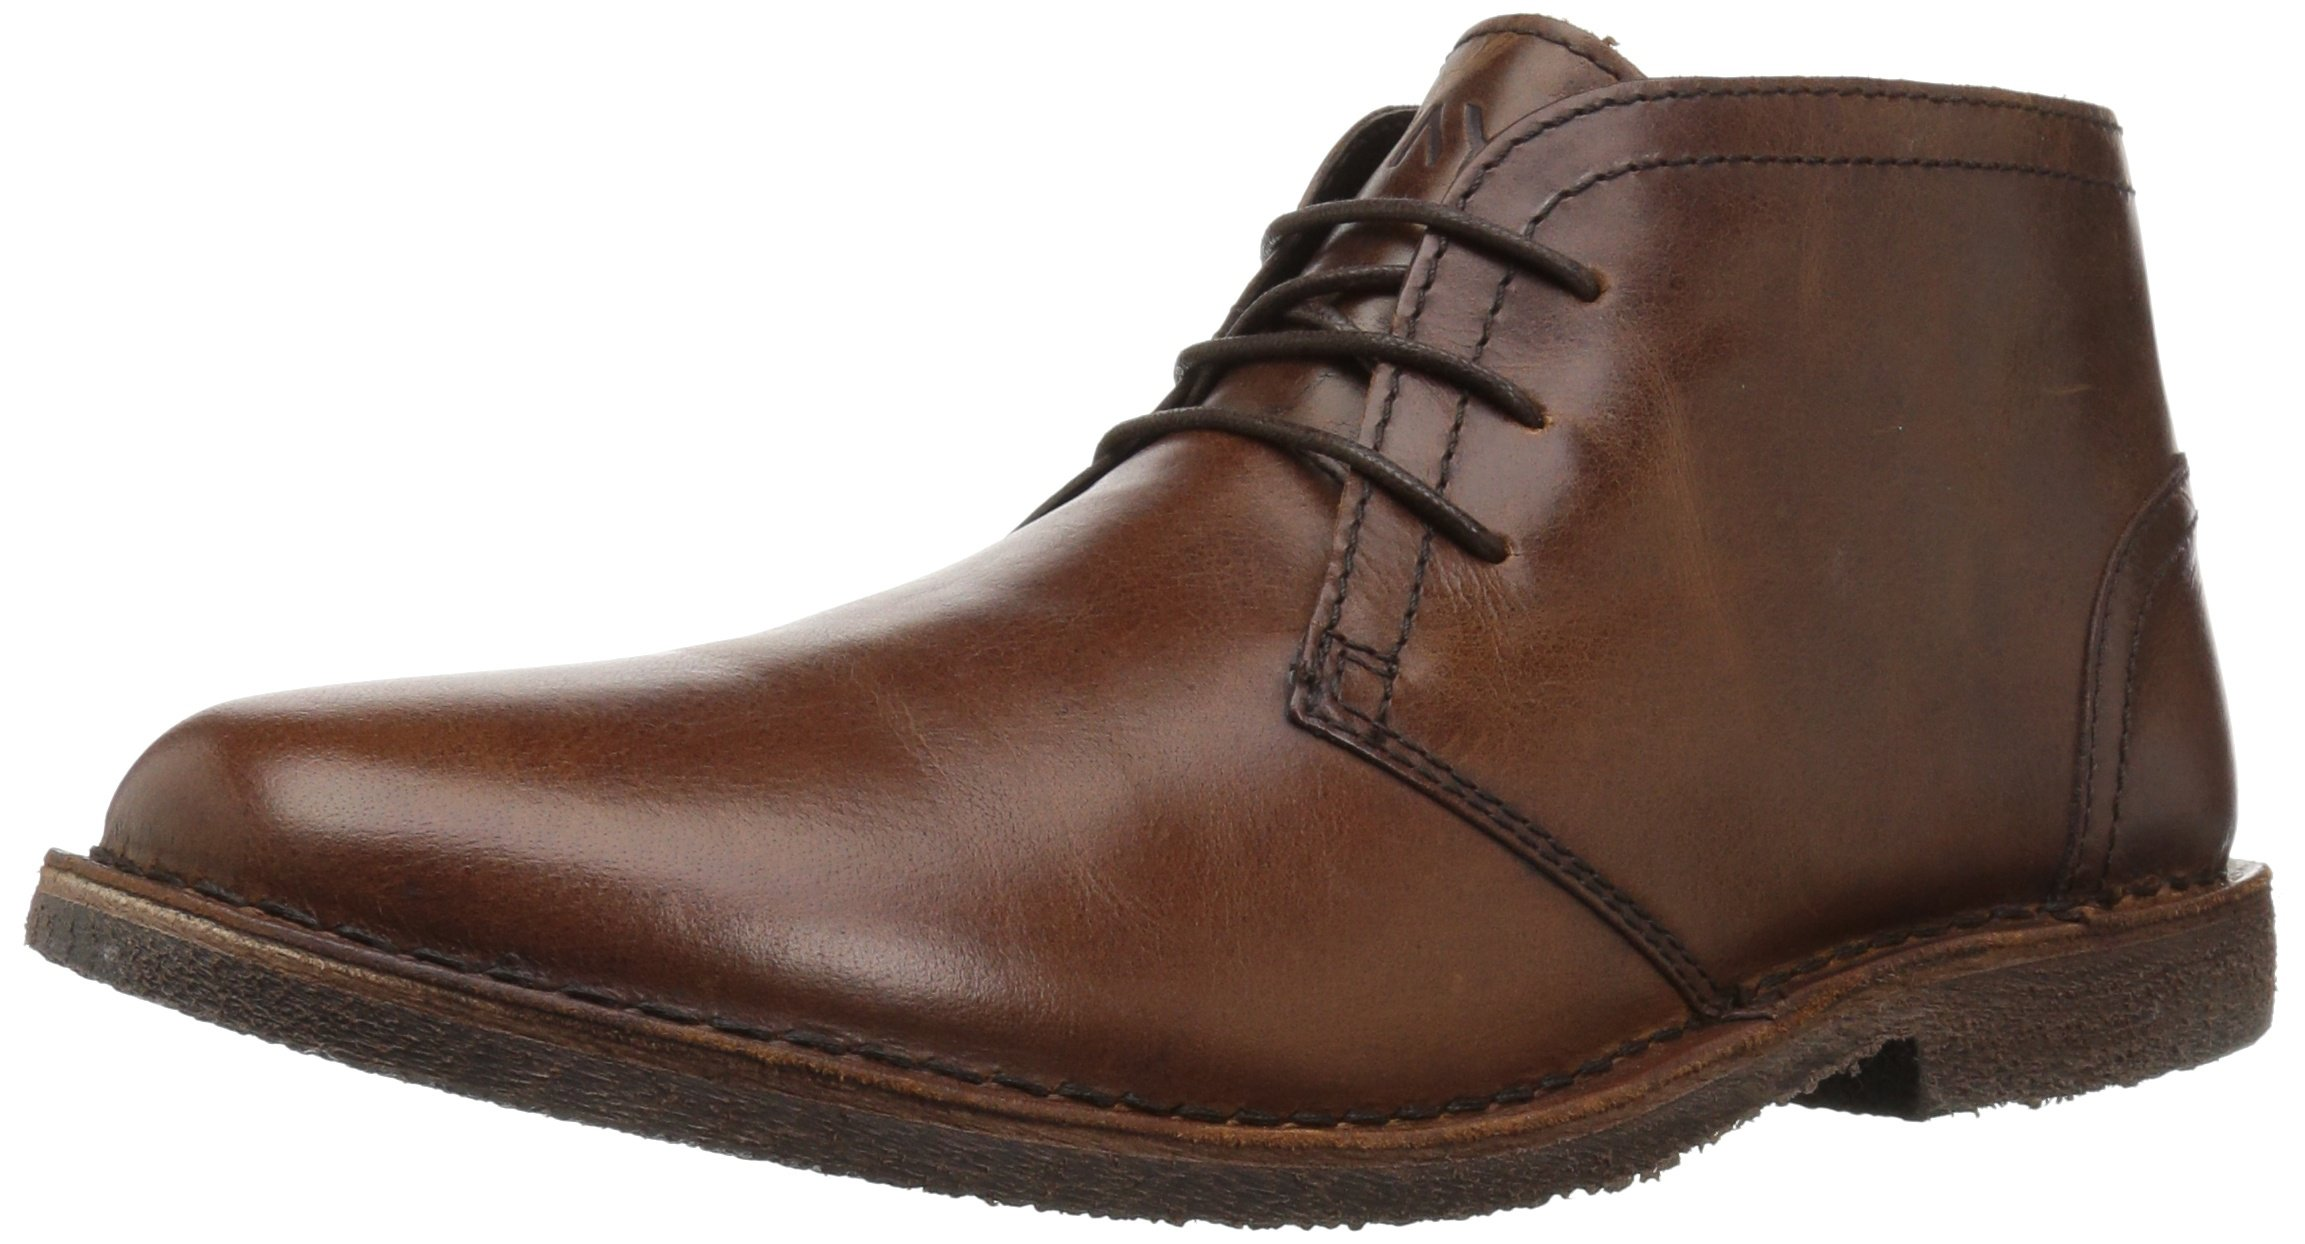 Marc New York by Andrew Marc Marc New York Men's Walden Chukka Boot, Brown/Tr Brown, 9.5 D US